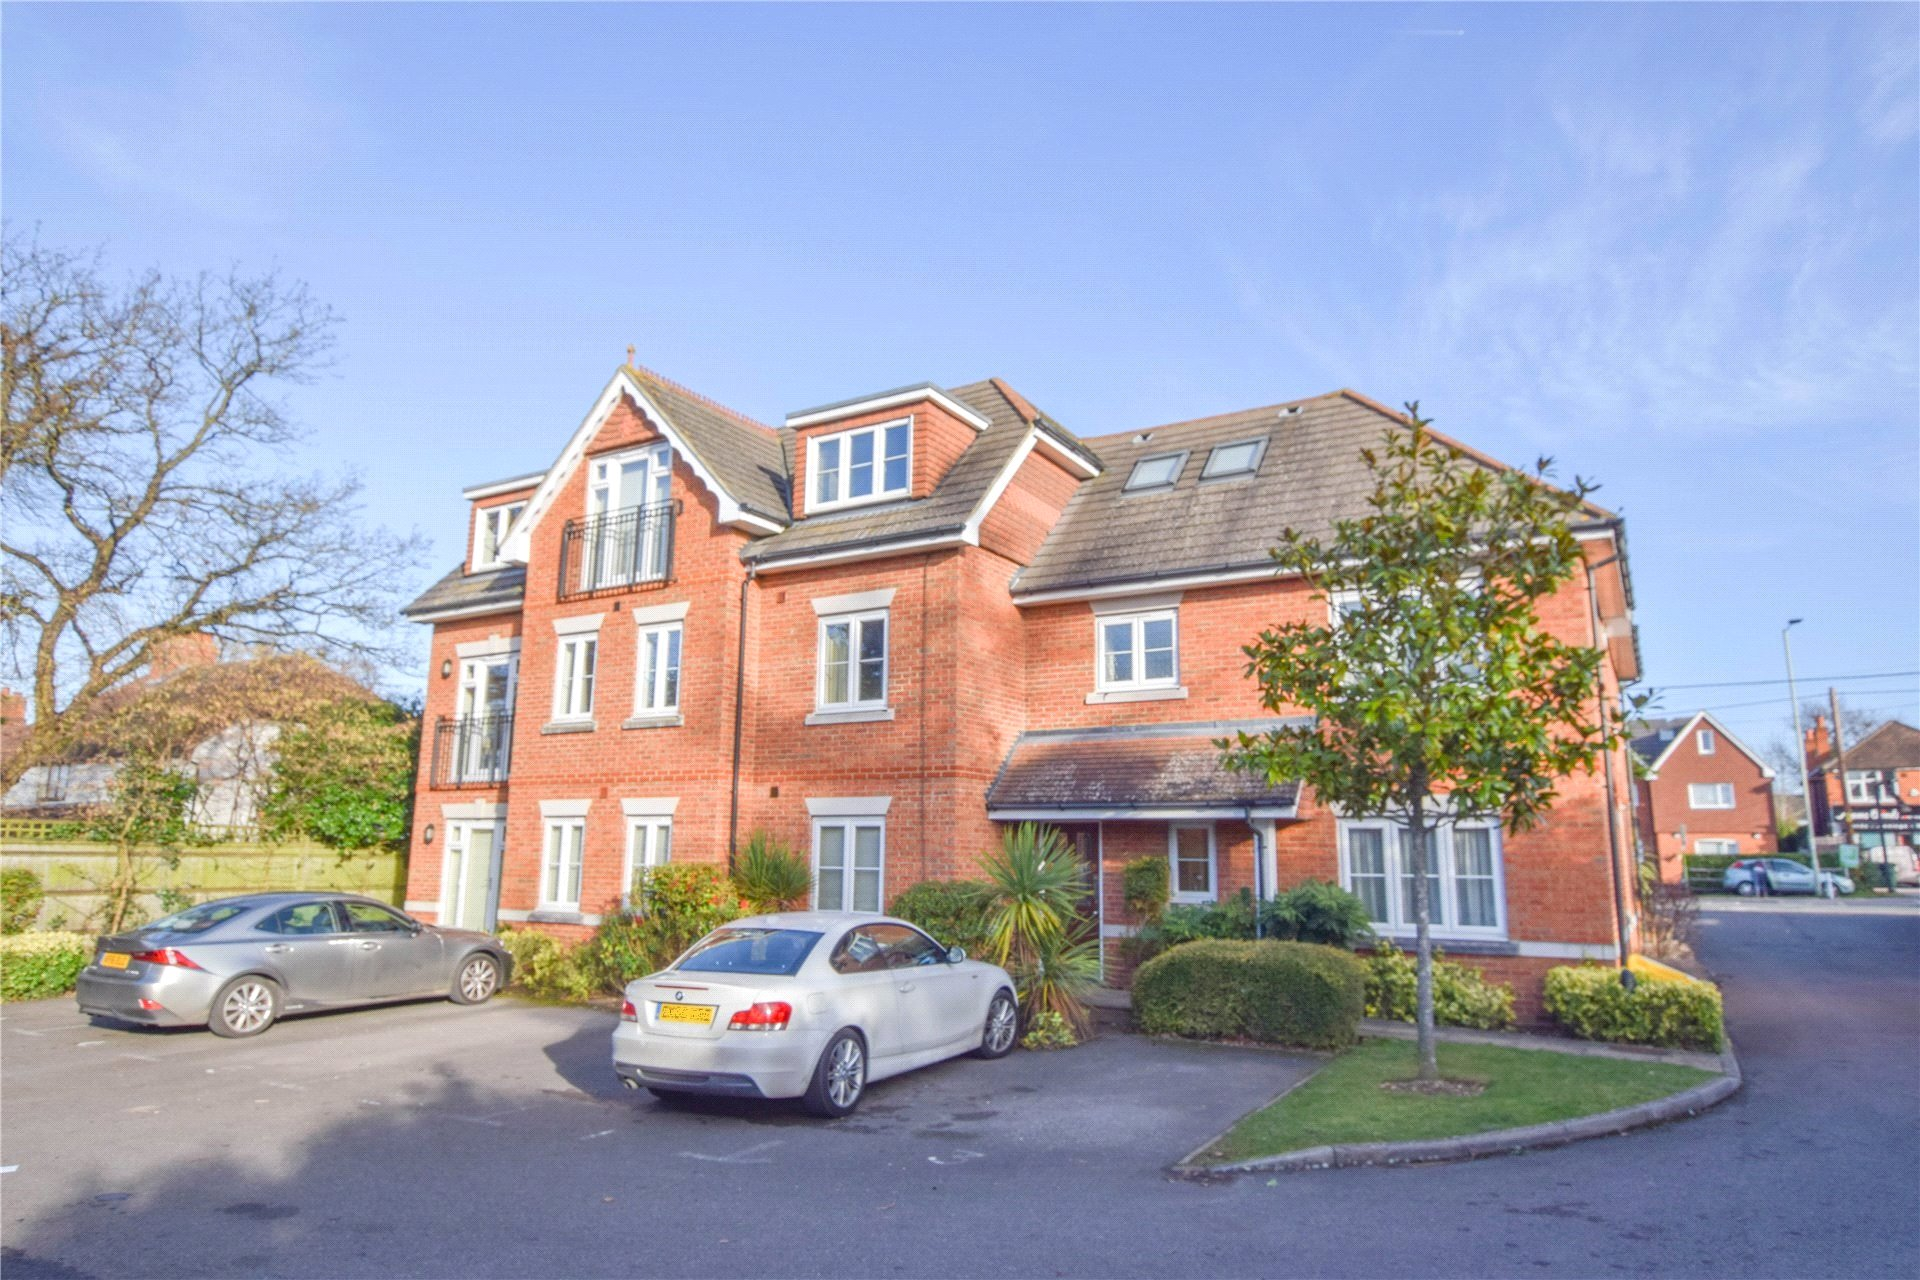 2 Bedrooms Apartment Flat for sale in Westbrook Court, 448 Reading Road, Wokingham, Berkshire, RG41